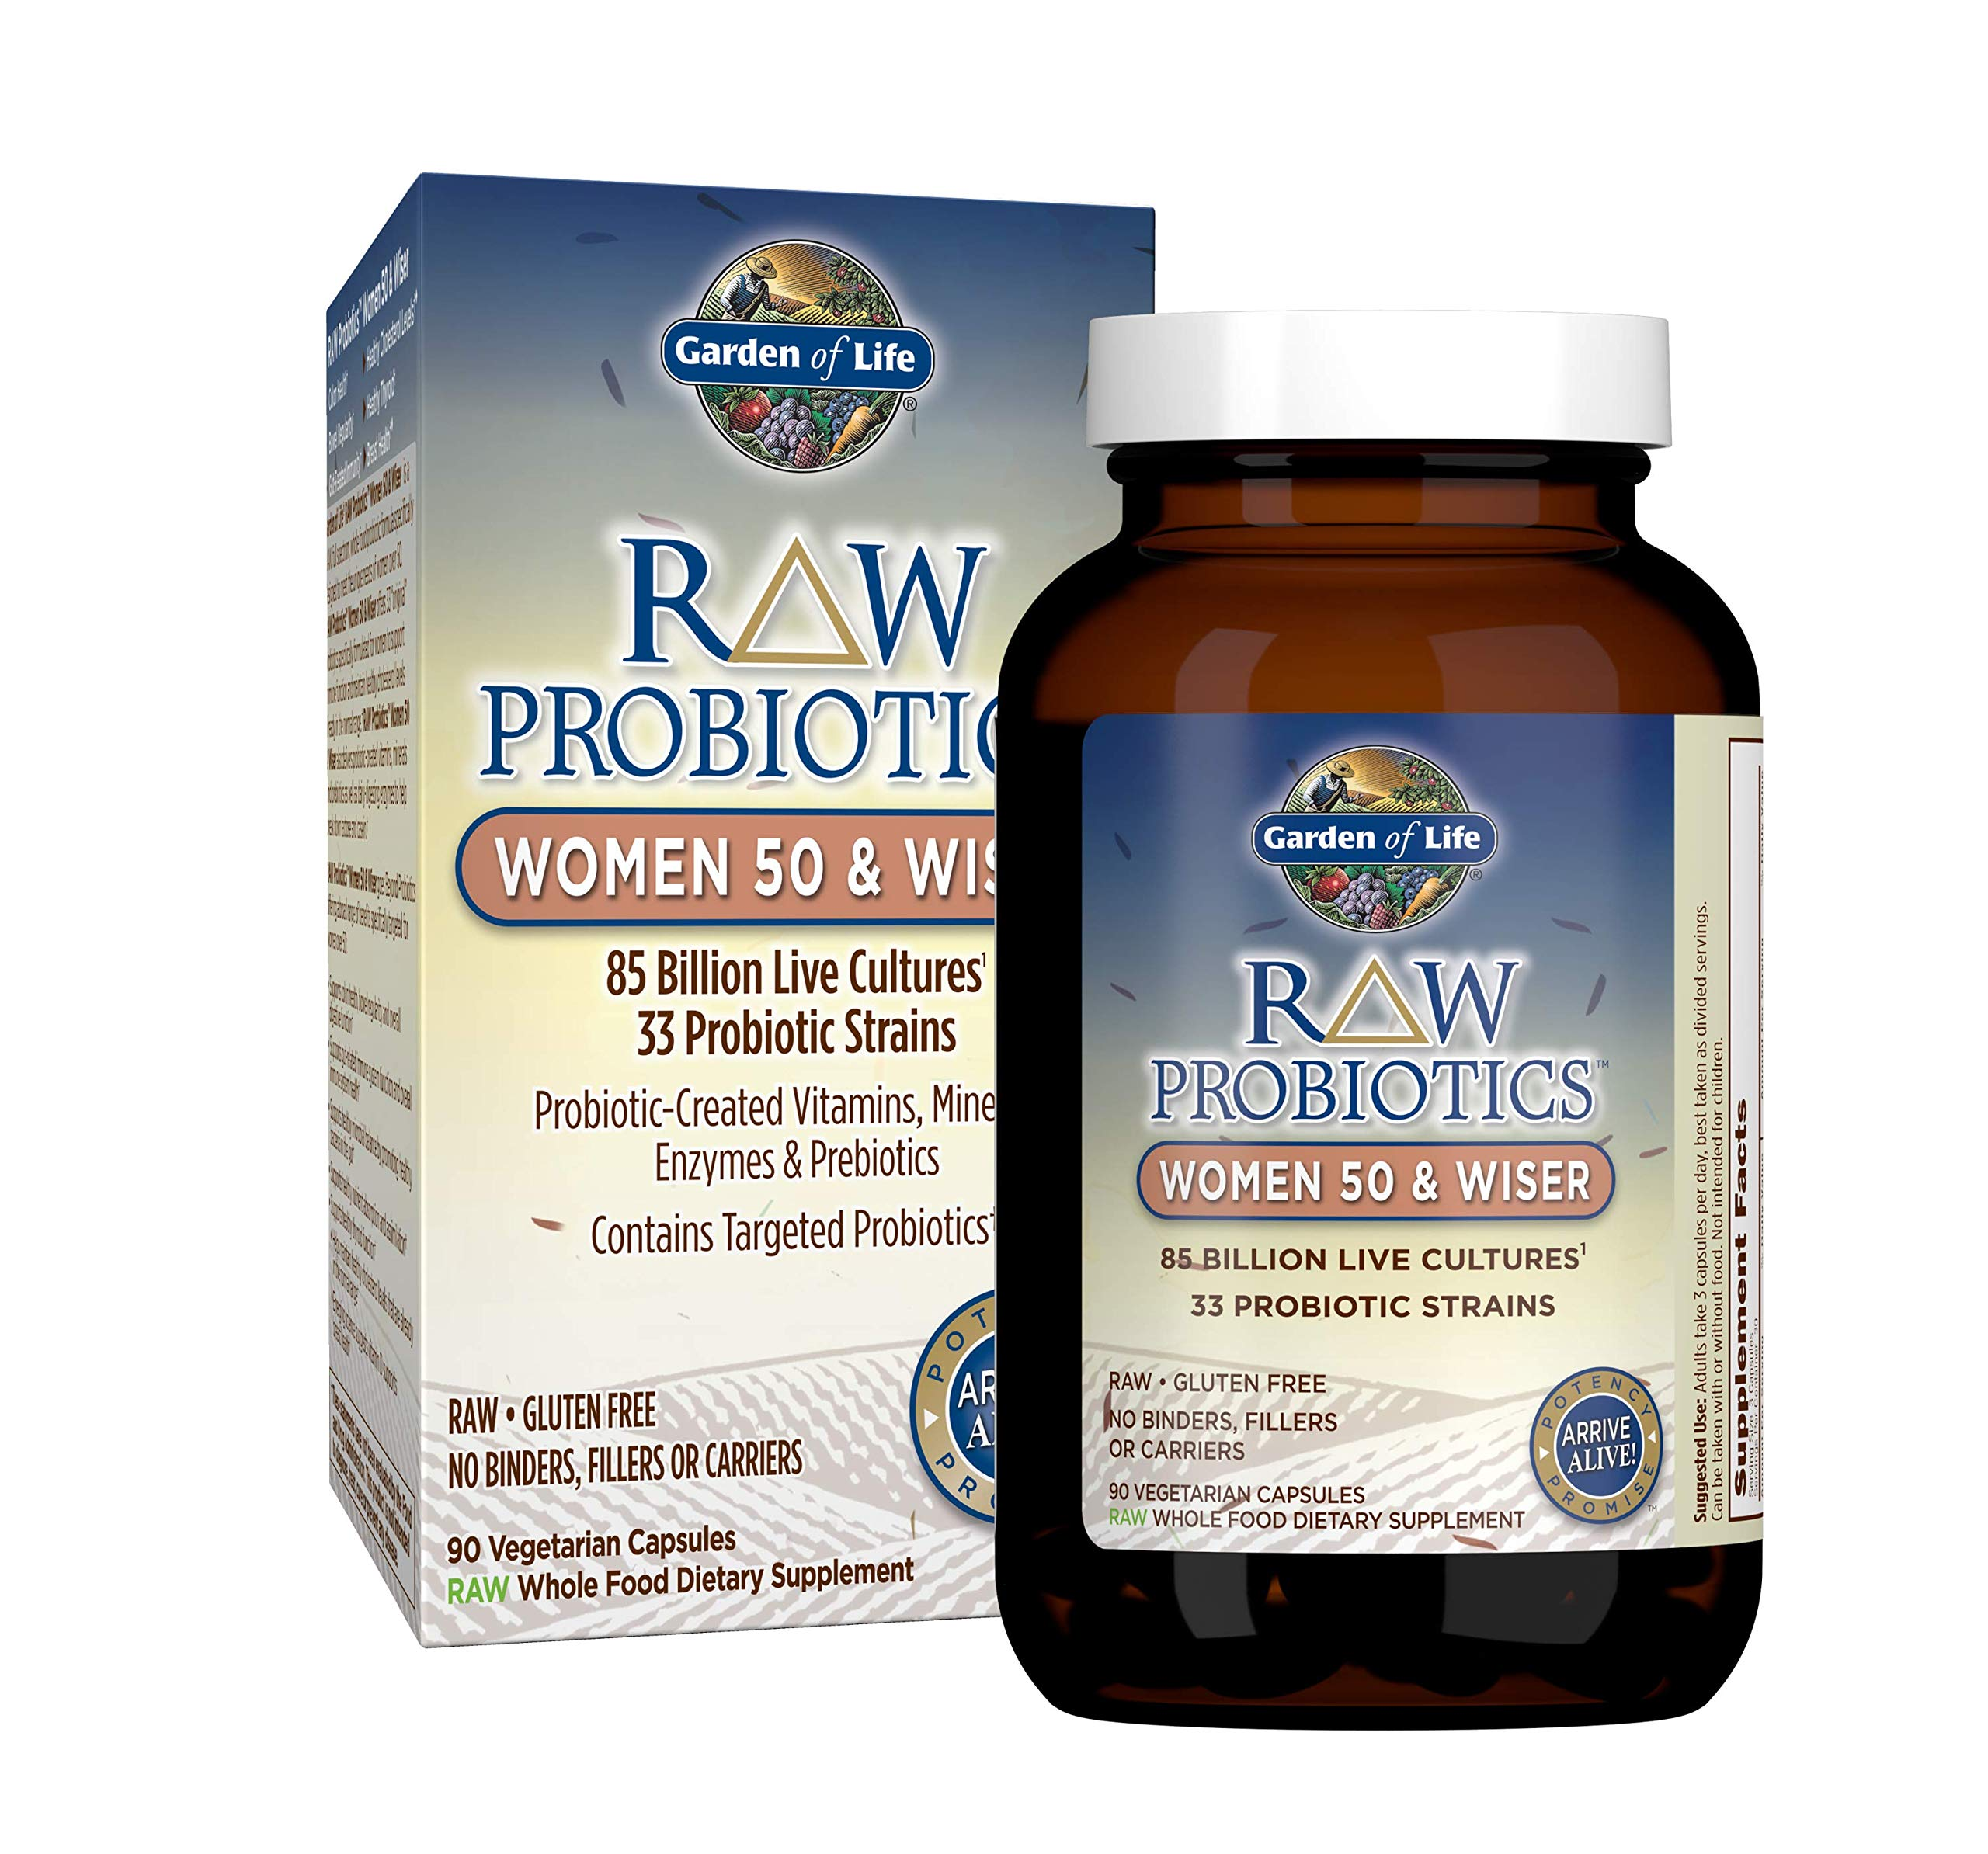 Garden of Life - RAW Probiotics Women 50 & Wiser - Acidophilus Live Cultures - Probiotic-Created Vitamins, Minerals, Enzymes and Prebiotics - Gluten Free - 90 Vegetarian Capsules by Garden of Life